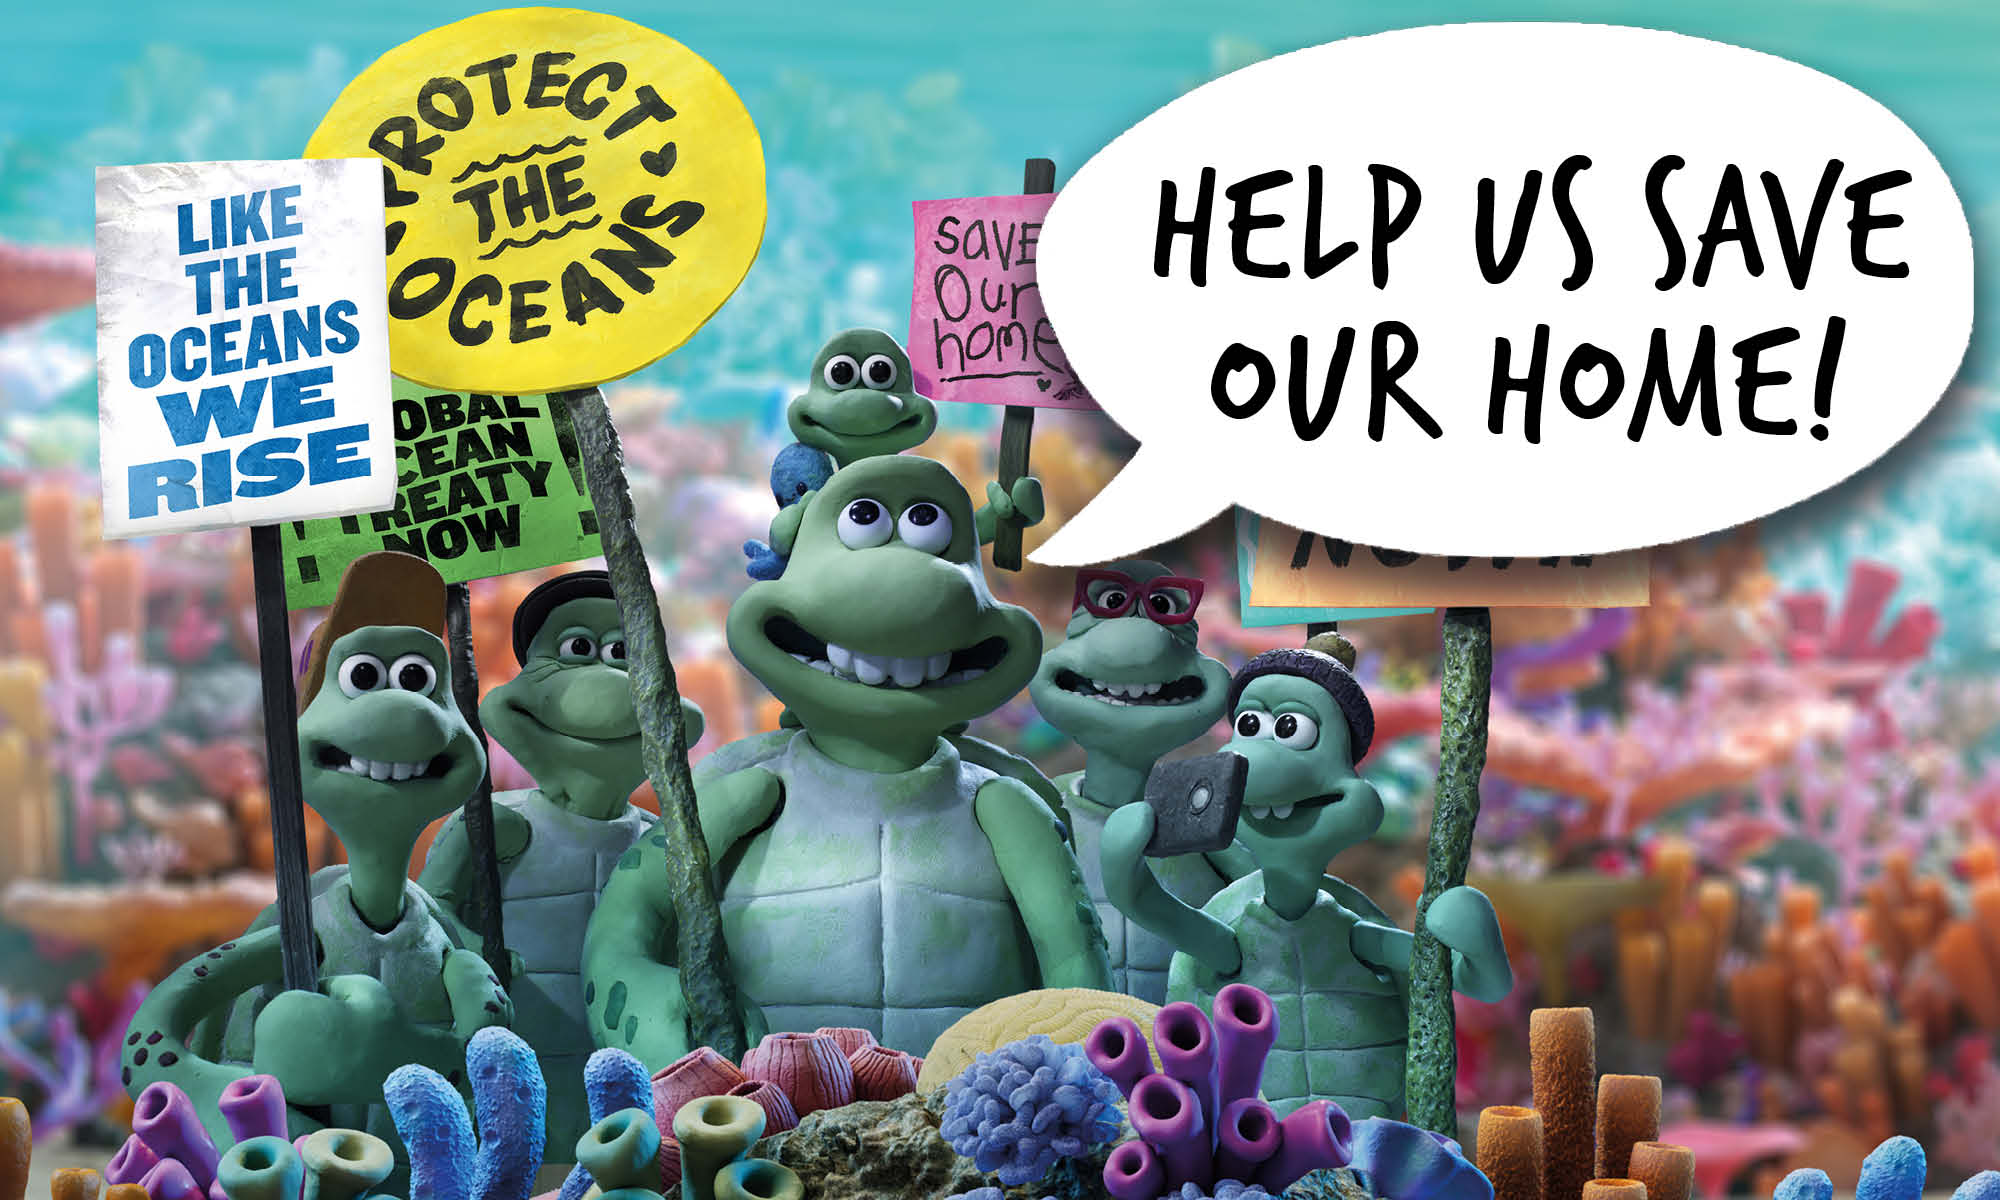 The family of cartoon sea turtles stand together holding placards with ocean protection slogans. Speech bubble reads 'Help us save our home'